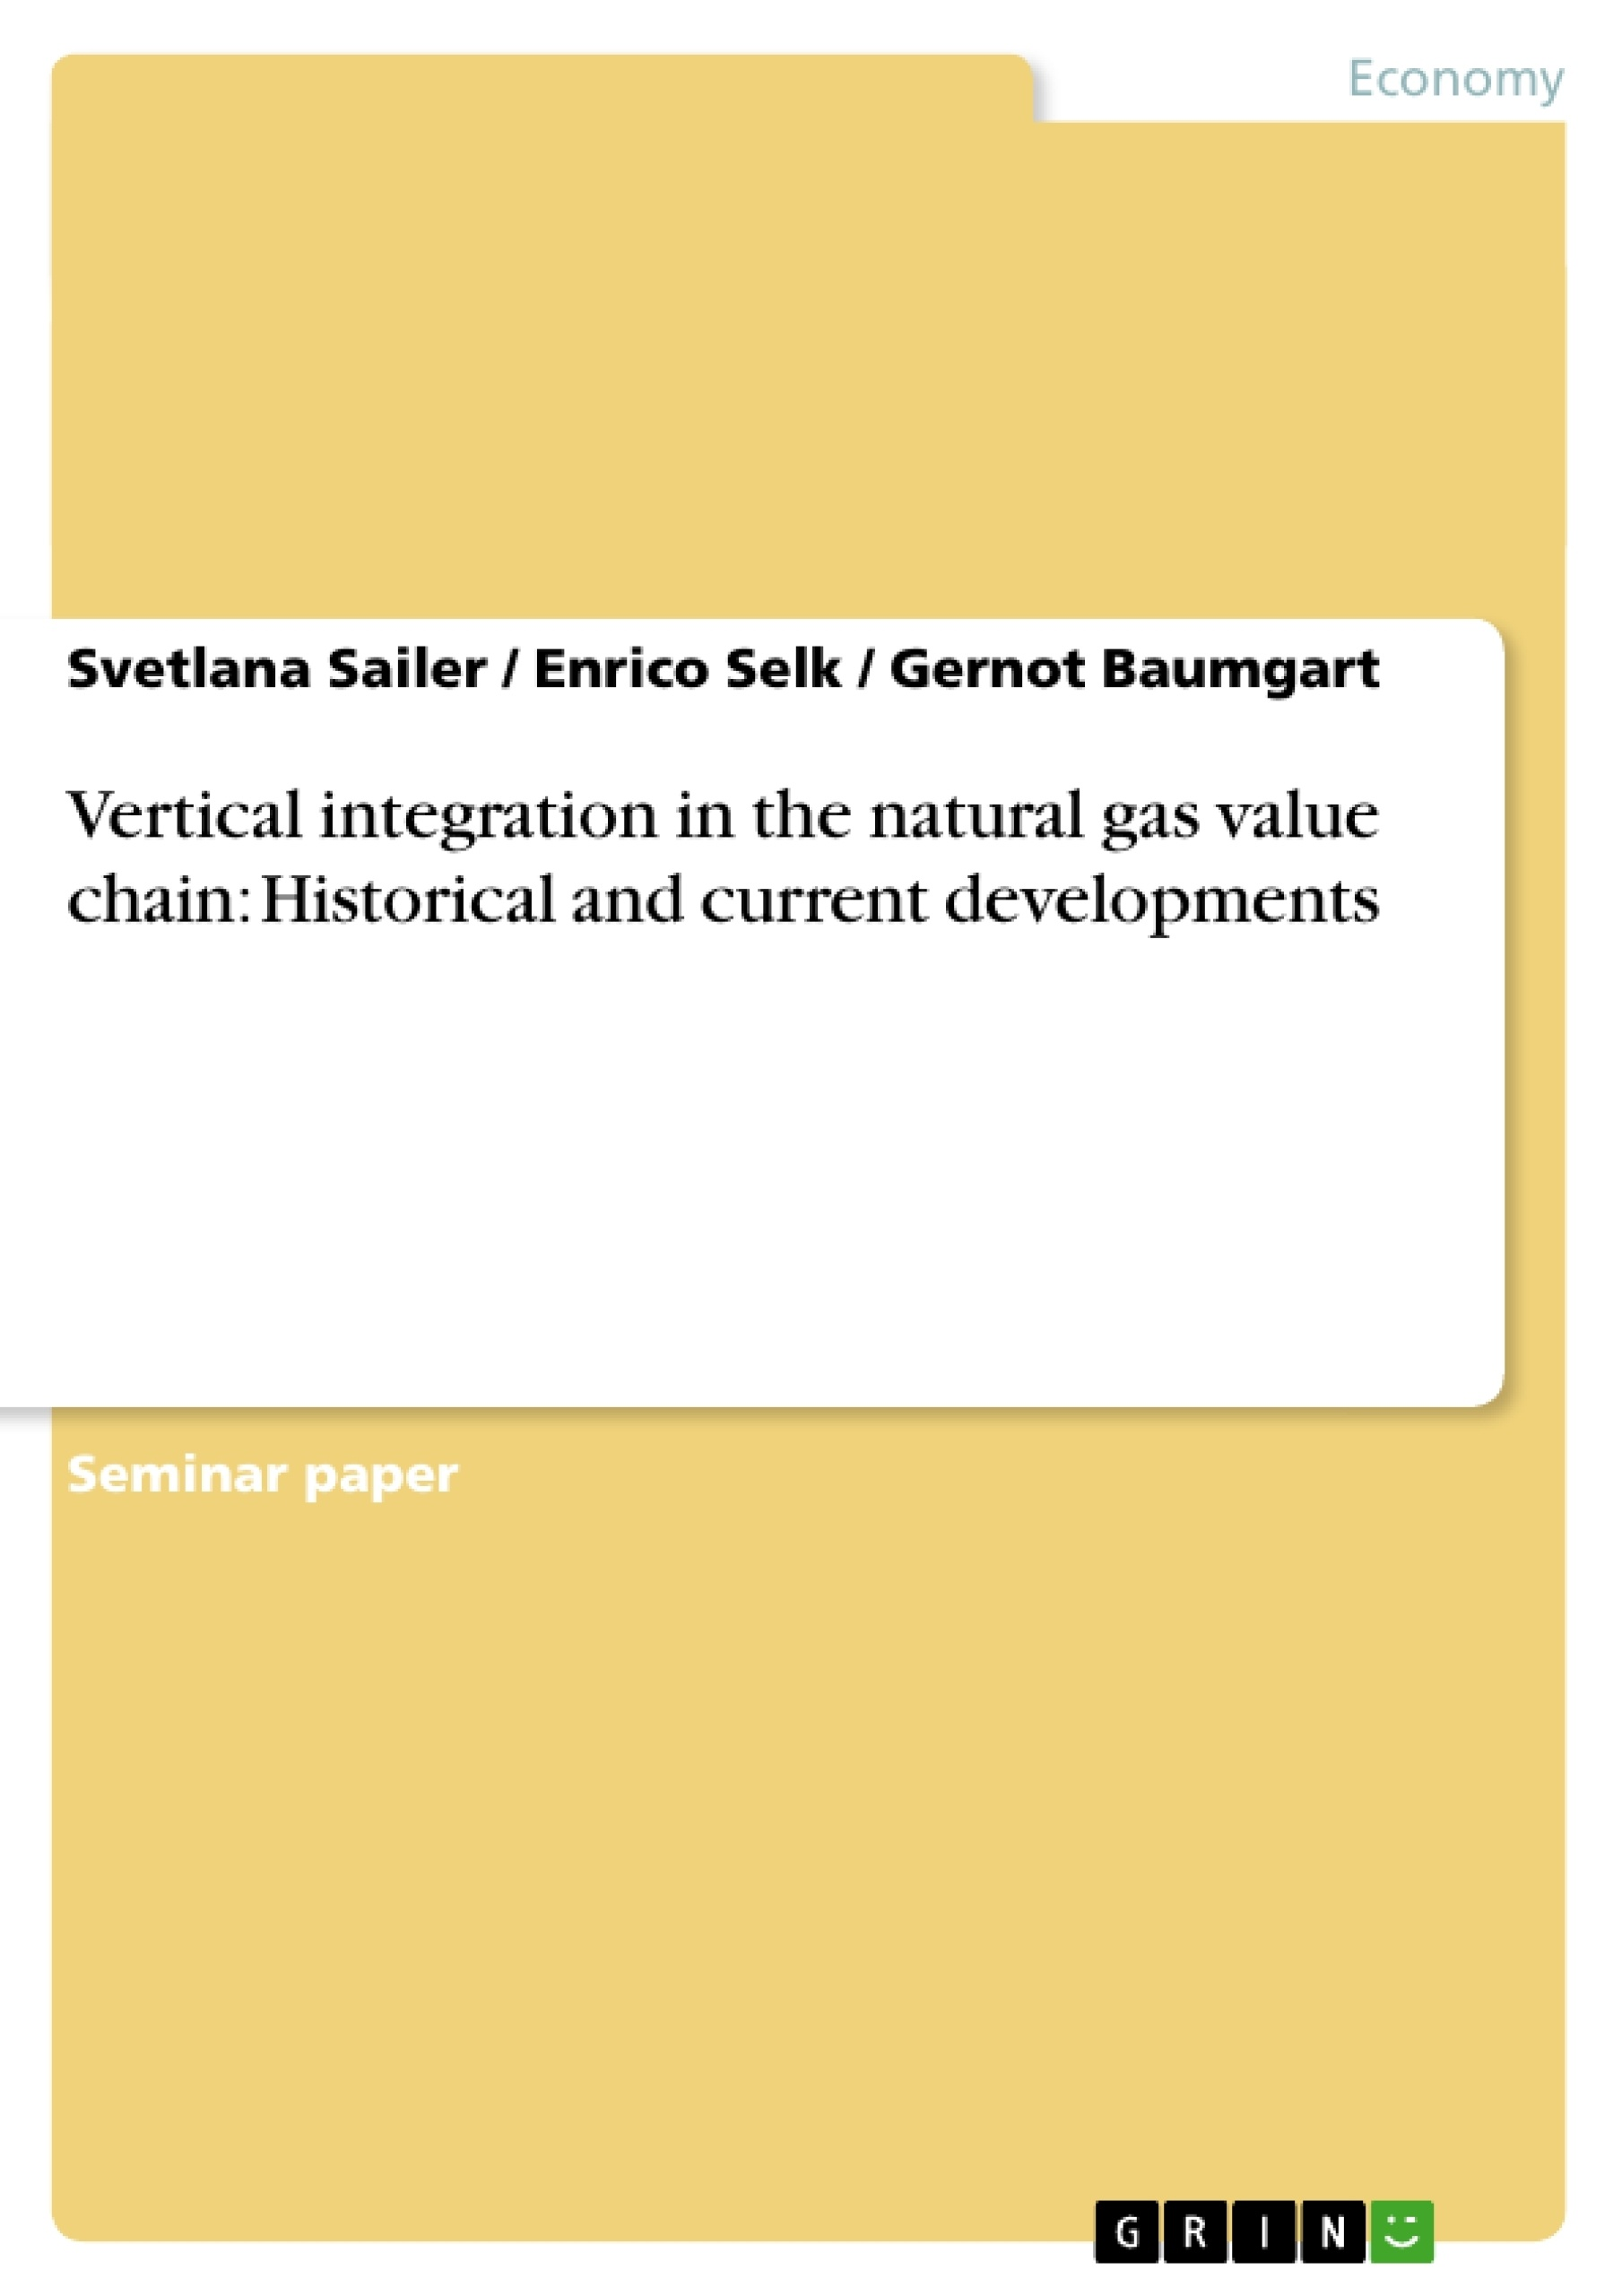 Title: Vertical integration in the natural gas value chain: Historical and current developments